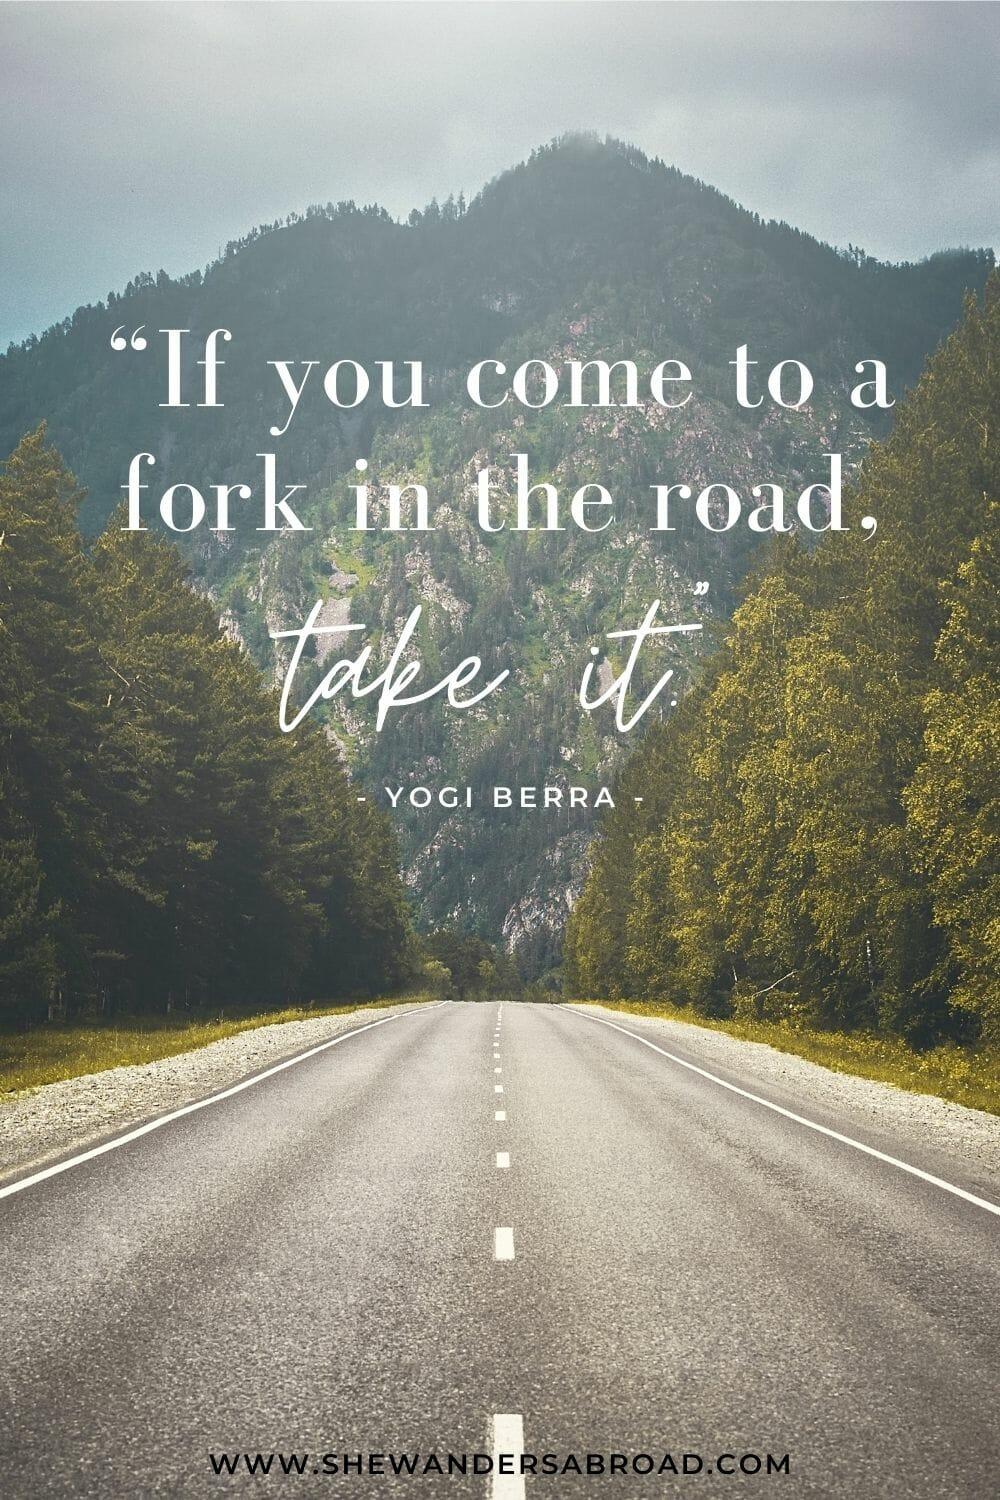 Short road trip quotes for Instagram